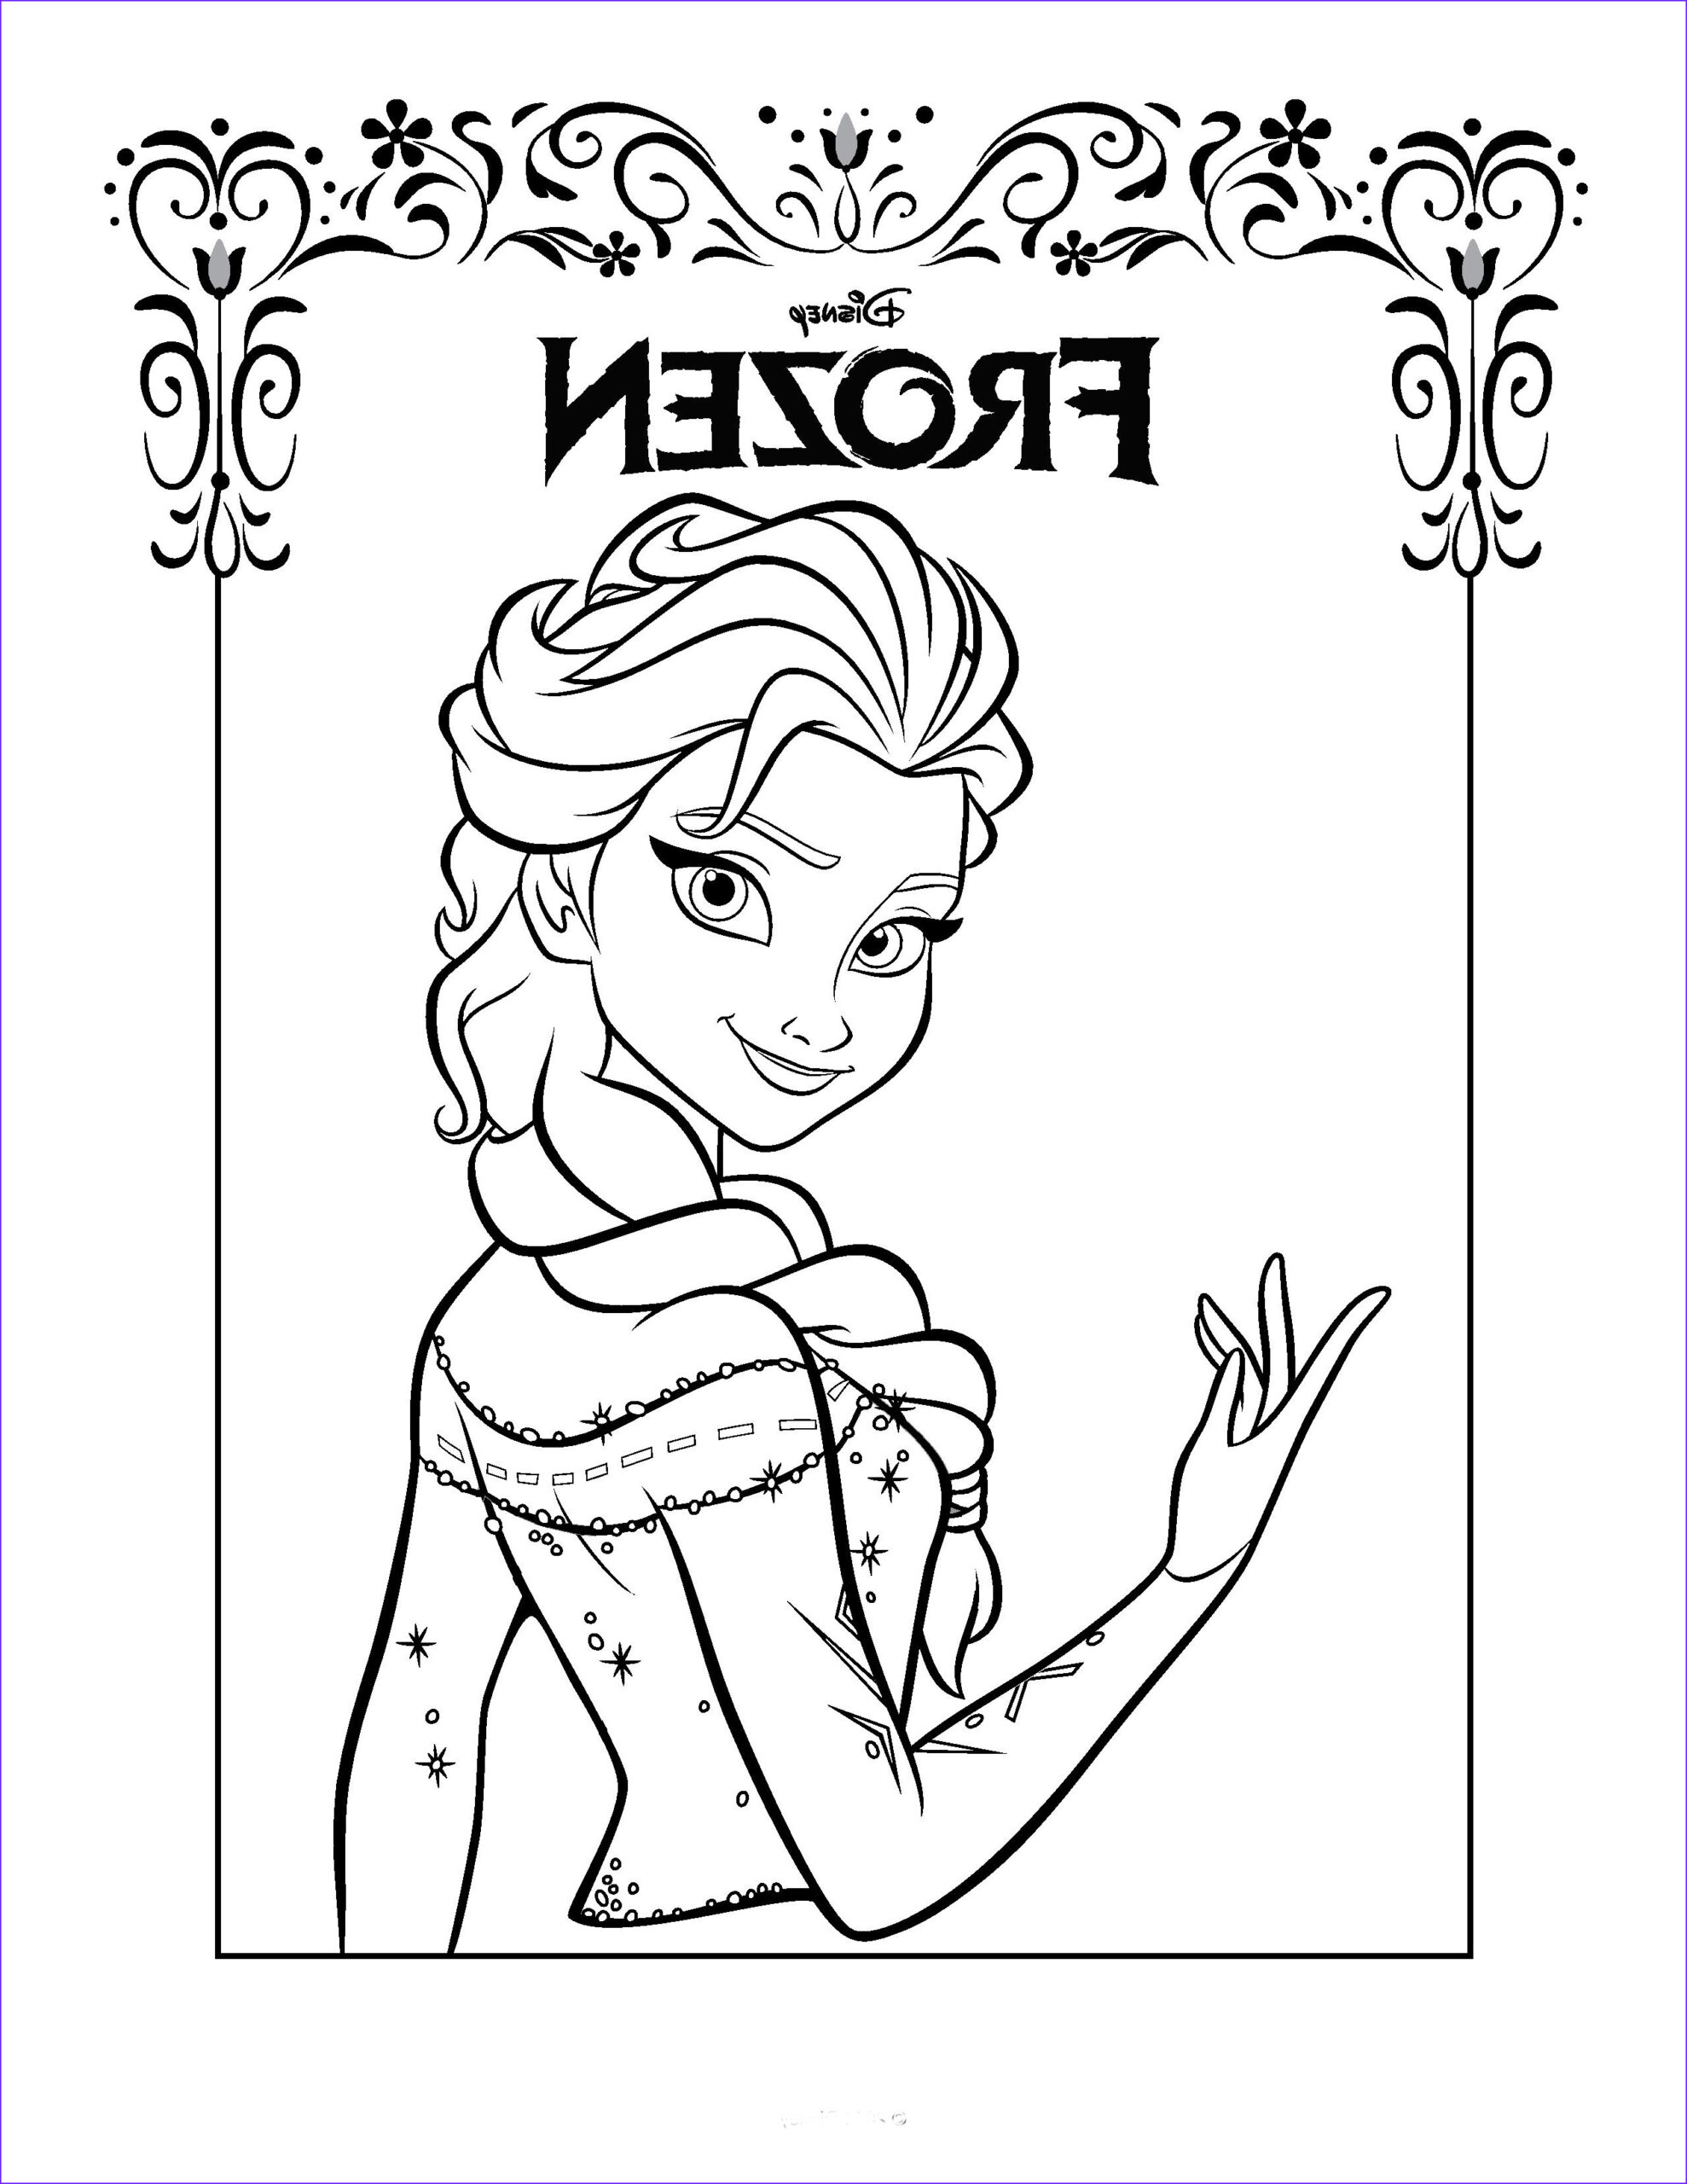 Free Frozen Coloring Pages Best Of Photography Free Printable Frozen Coloring Pages for Kids Best